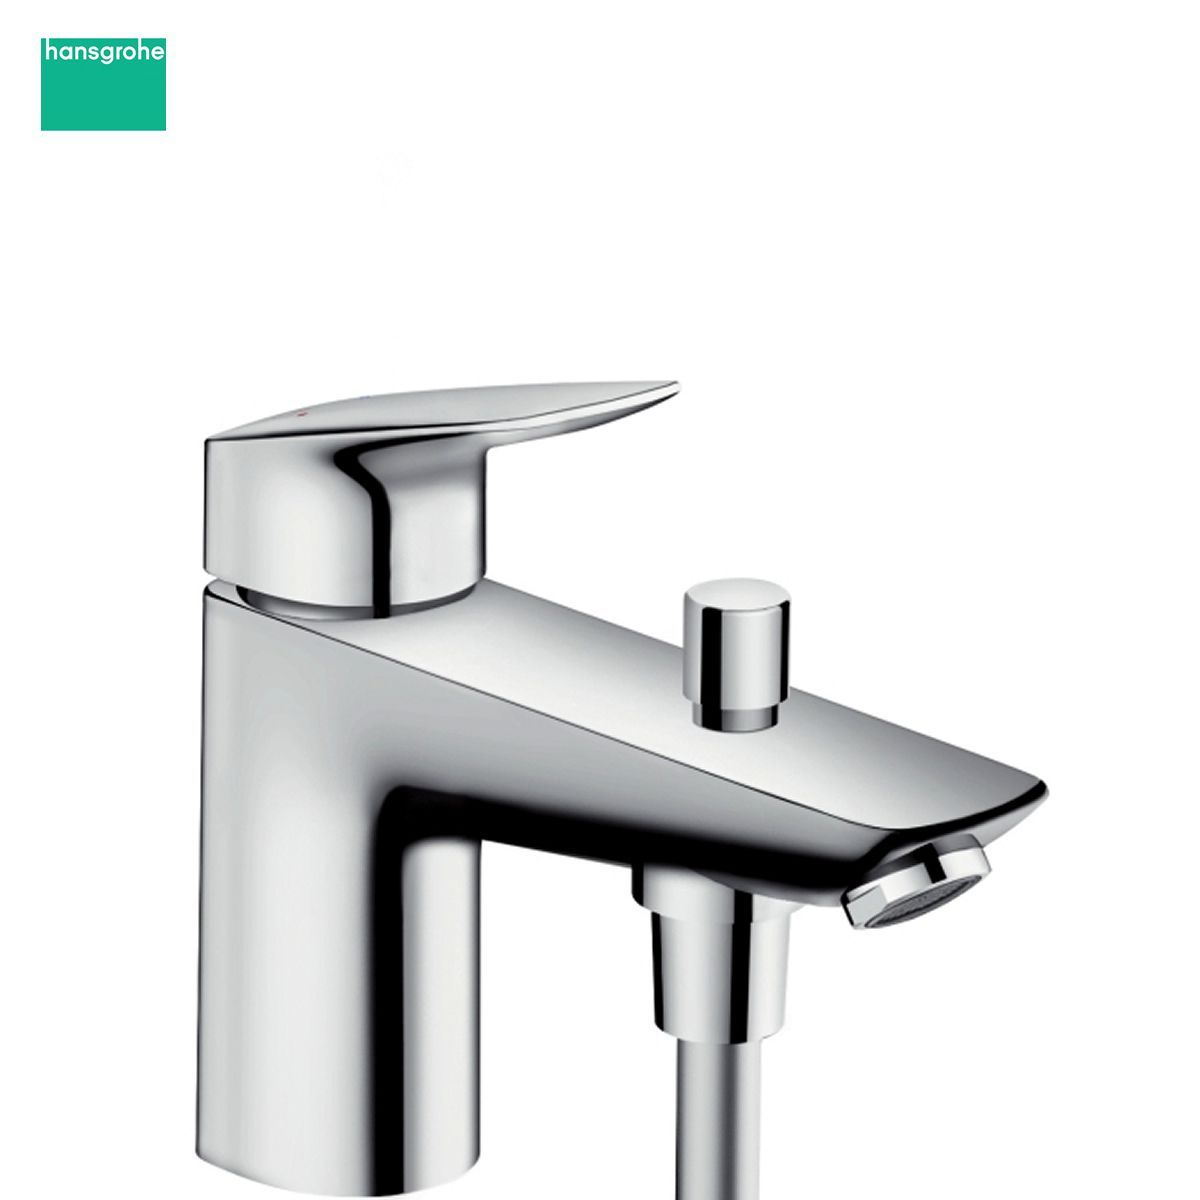 Hansgrohe Logis Single Lever Bath Shower Mixer | Bath shower mixers ...